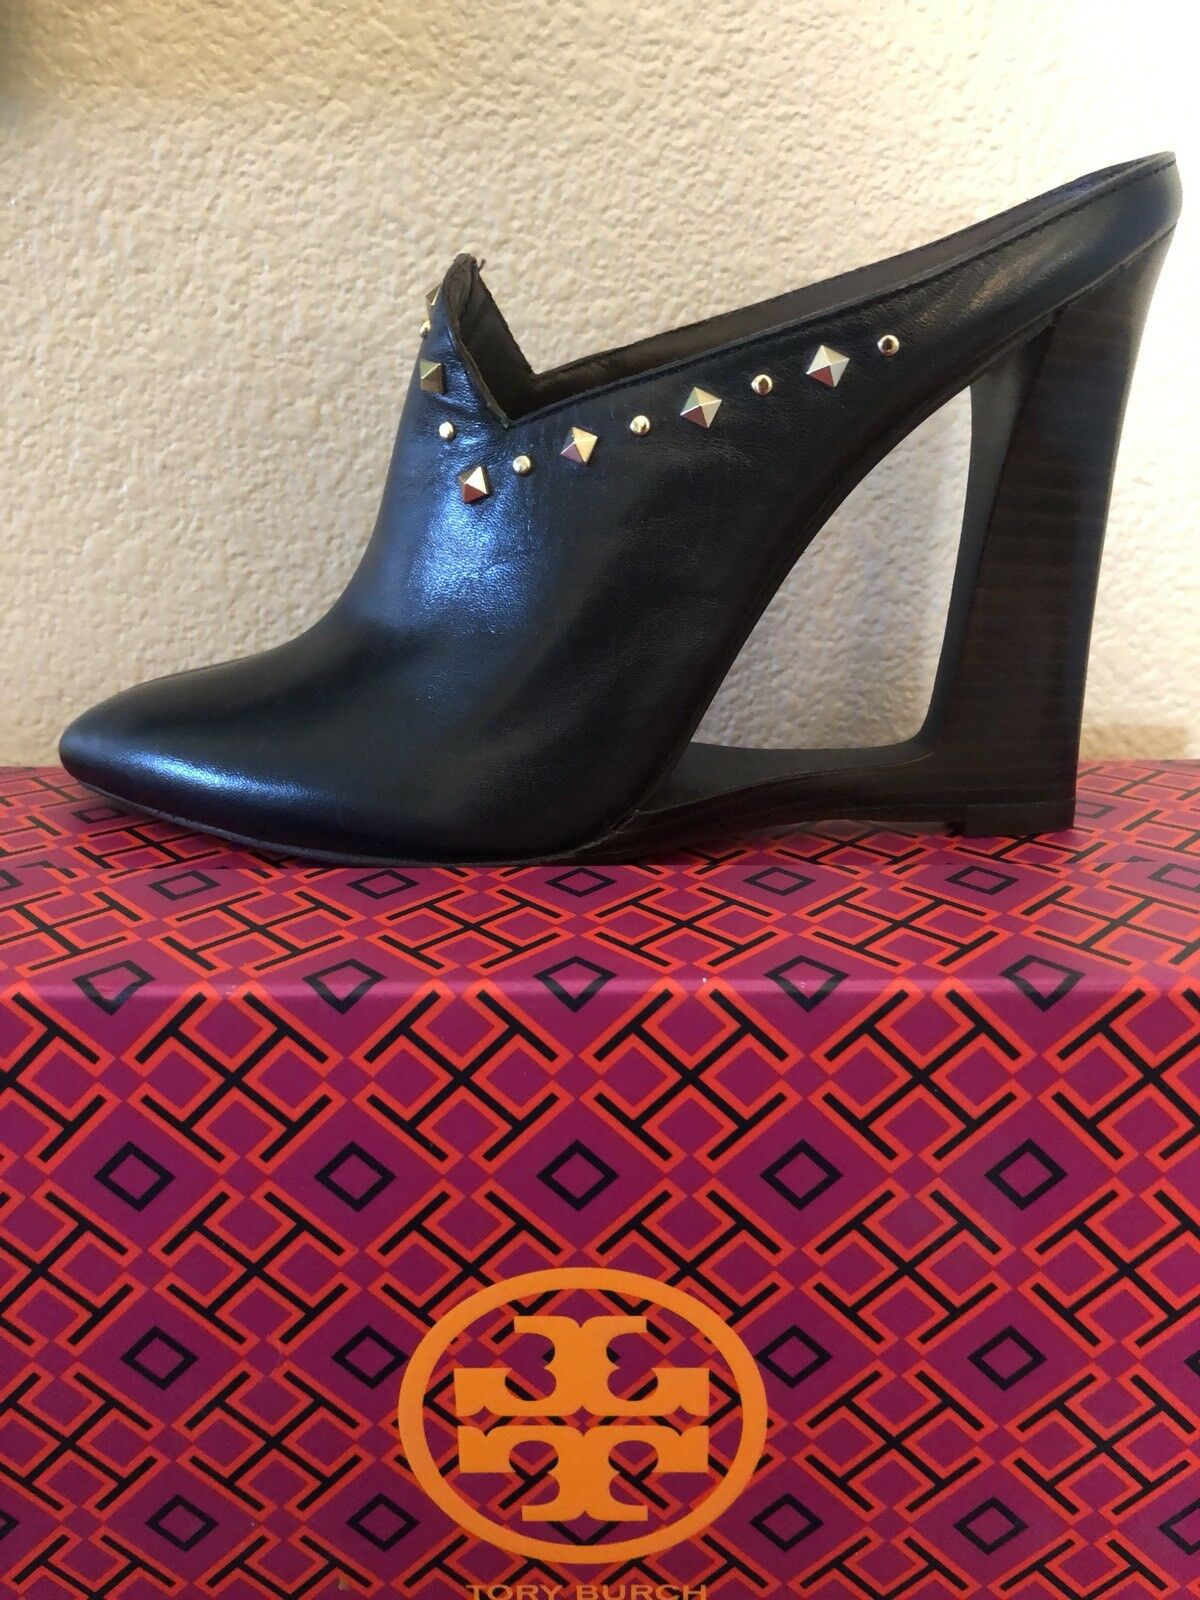 TORY BURCH KINGSBRIDGE STUDDED 110MM MULE   NAVY StiefelIE TORY NAVY  damen SZ 7  495 f09101